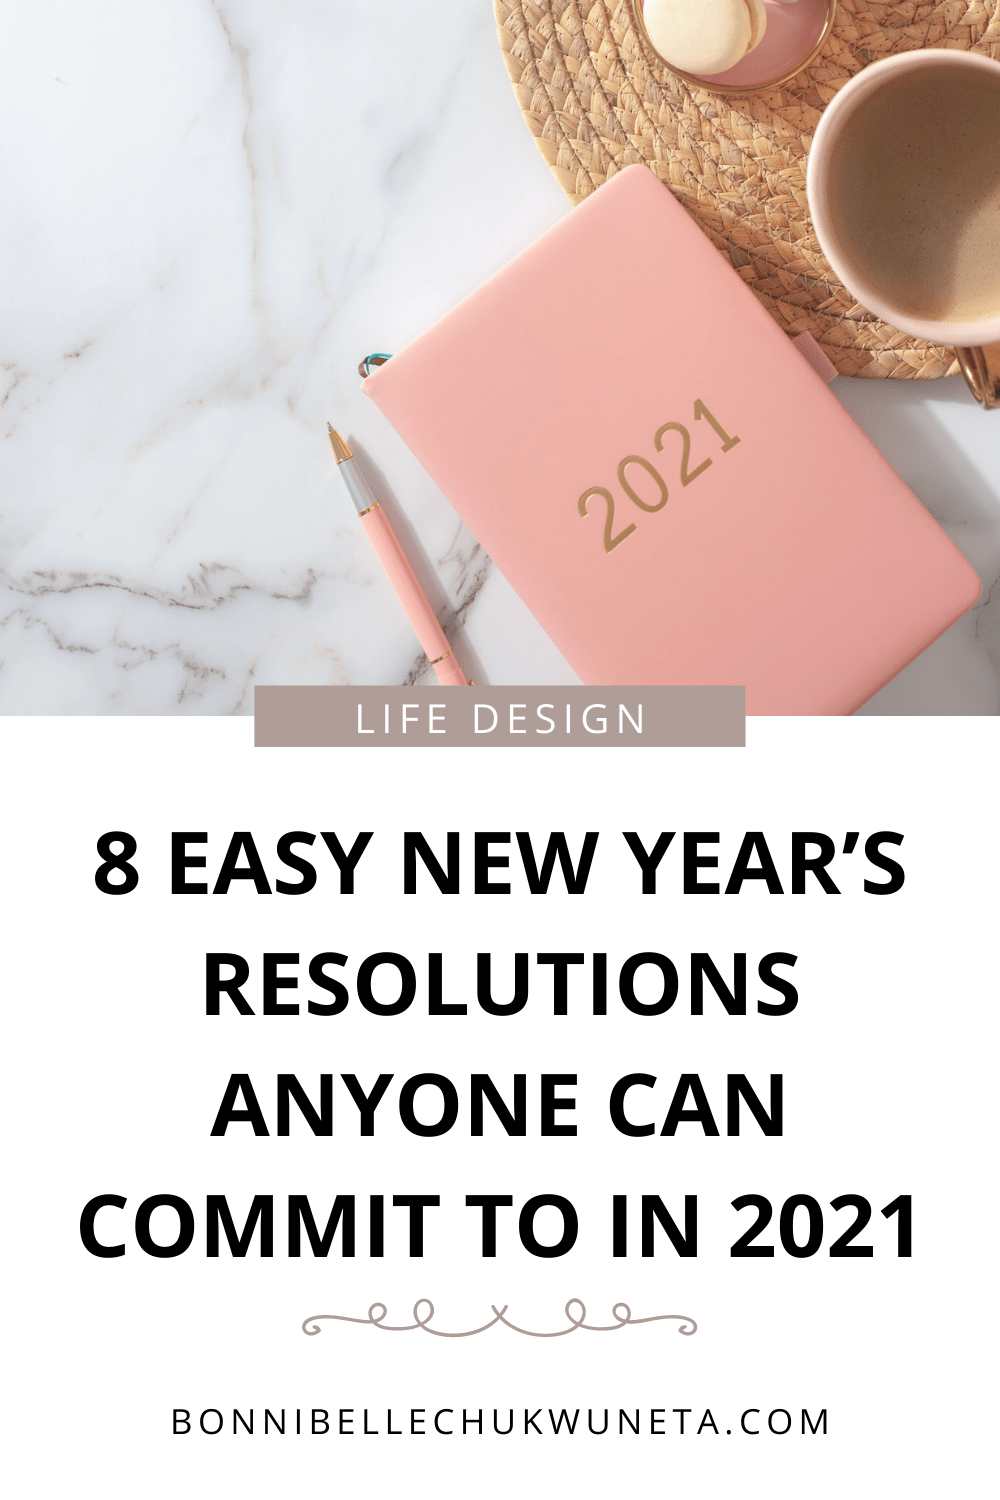 8 easy new year's resolutions anyone can commit to in 2021 | Bonnibelle Chukwuneta